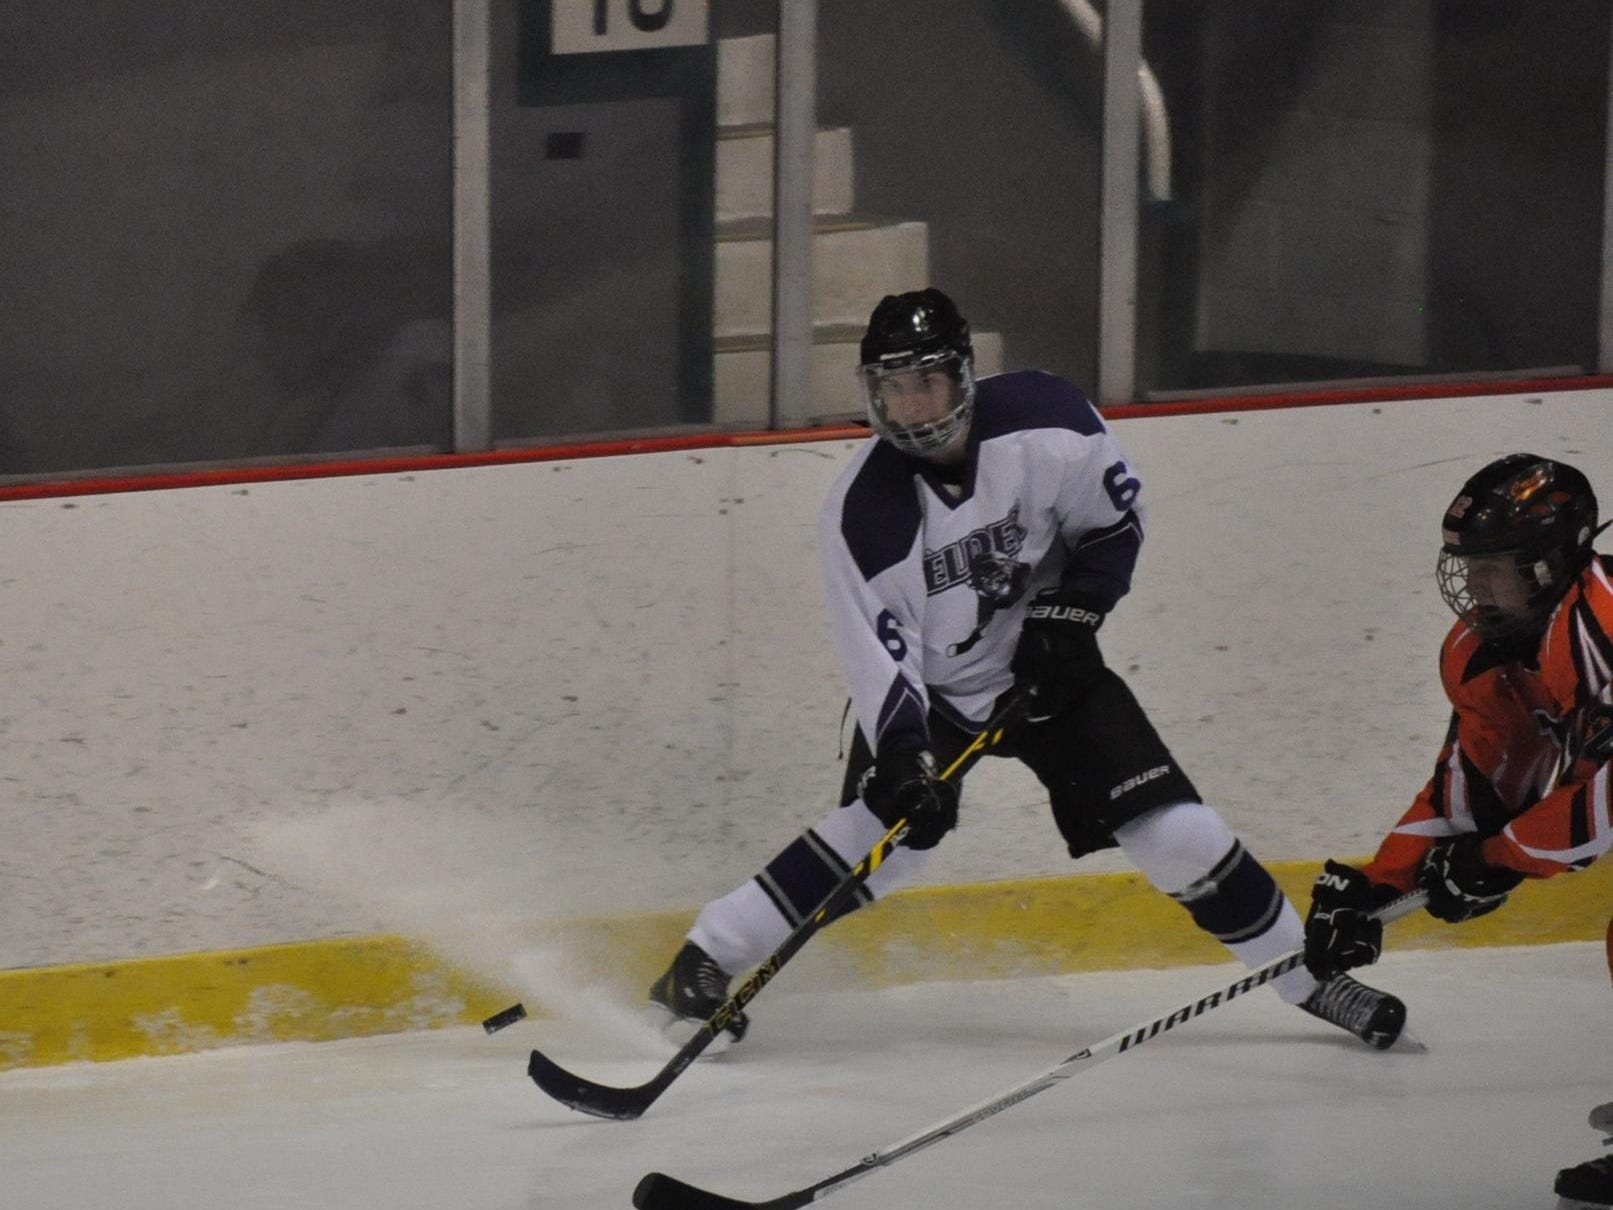 Elder junior Mike Wynn, No. 6, works the puck along the boards in a scrimmage against Beavercreek on Nov. 22 at the Cincinnati Gardens.